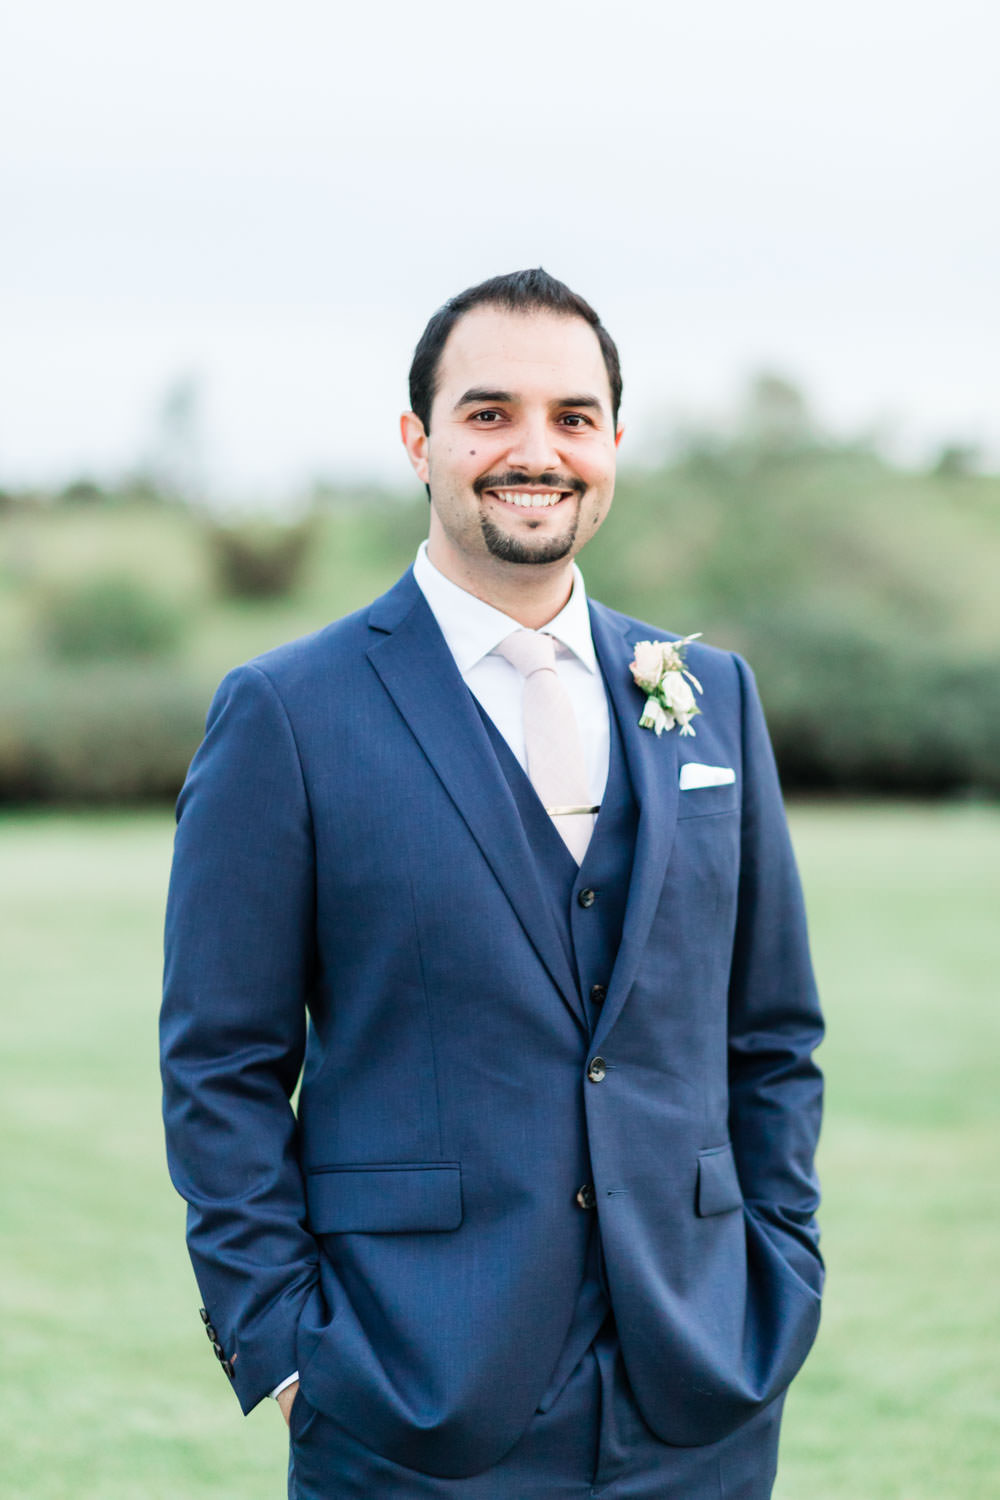 Groom portrait at Ethereal Open Air Resort, Cavin Elizabeth Photography